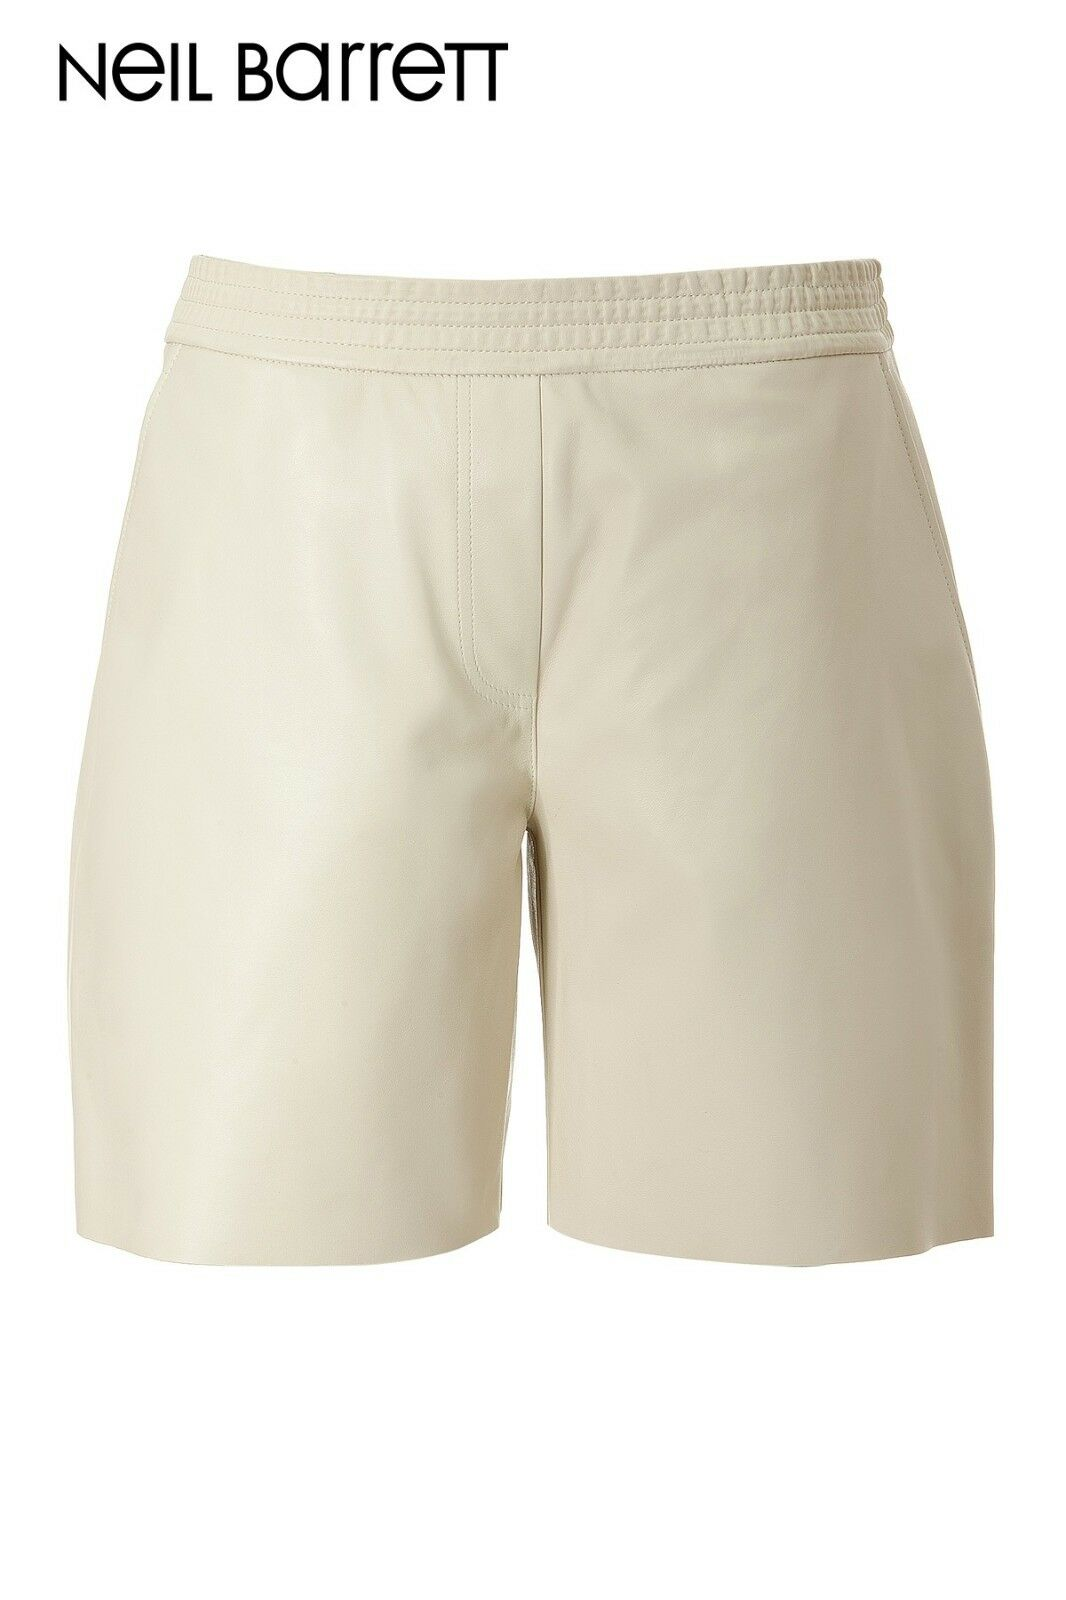 Neil Barrett Natural Leather Shorts Cream - Small>RRP £750.00